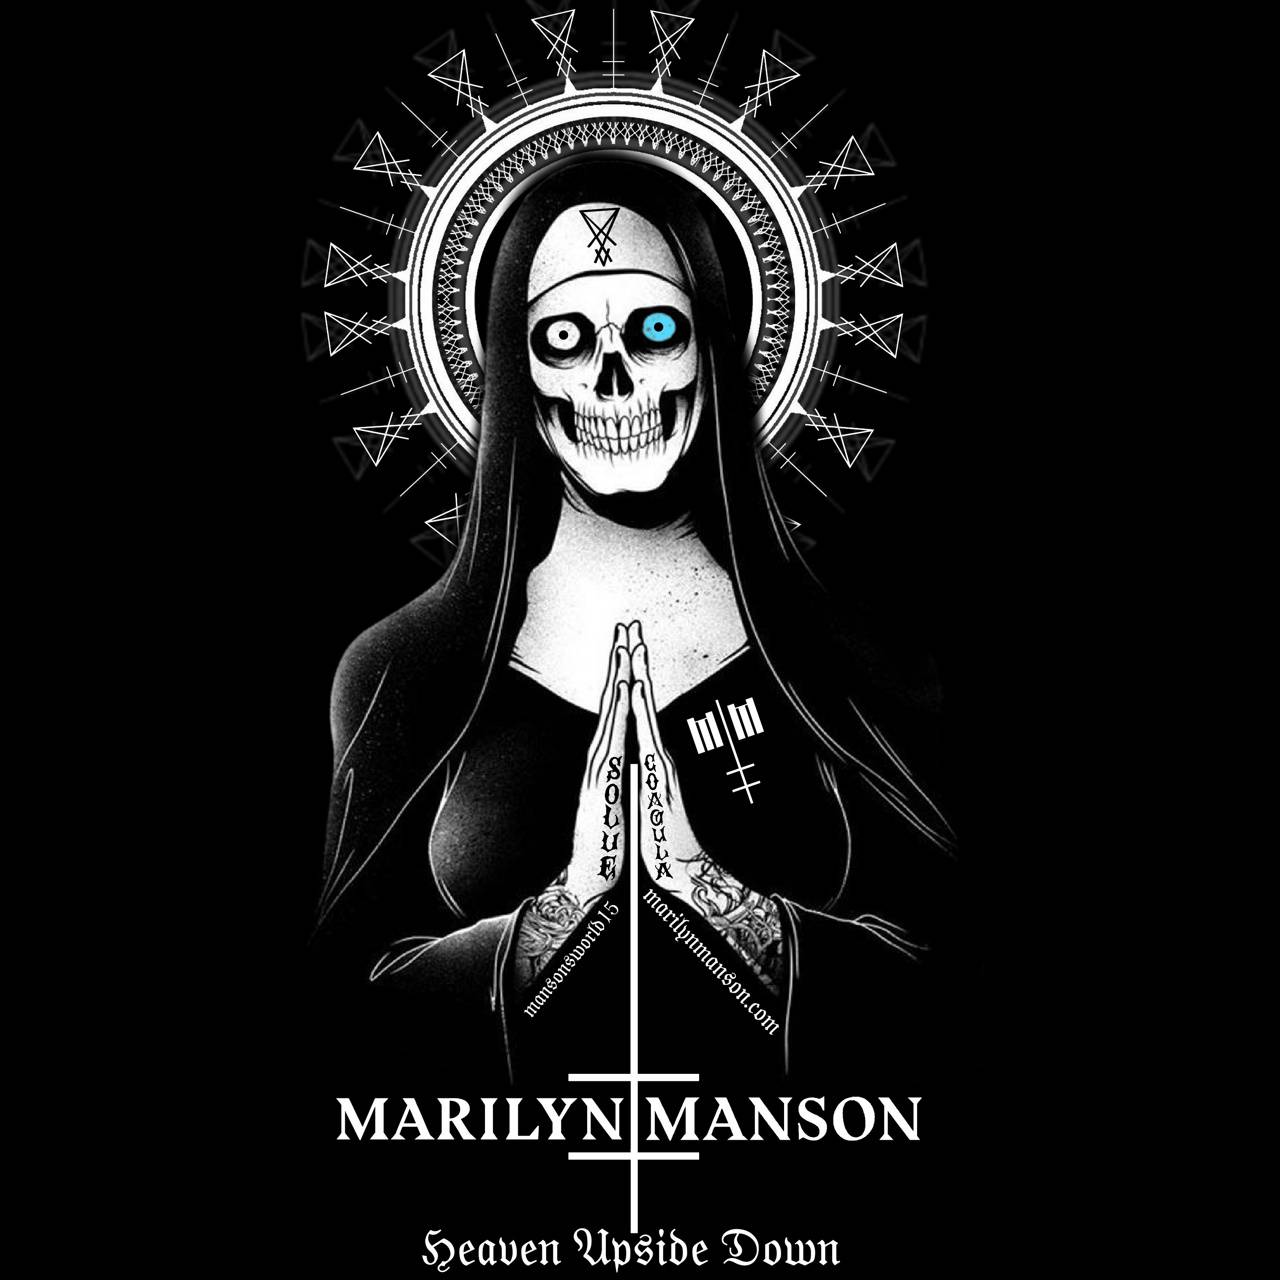 Marilyn Manson Wallpaper By Andy1428 50 Free On Zedge